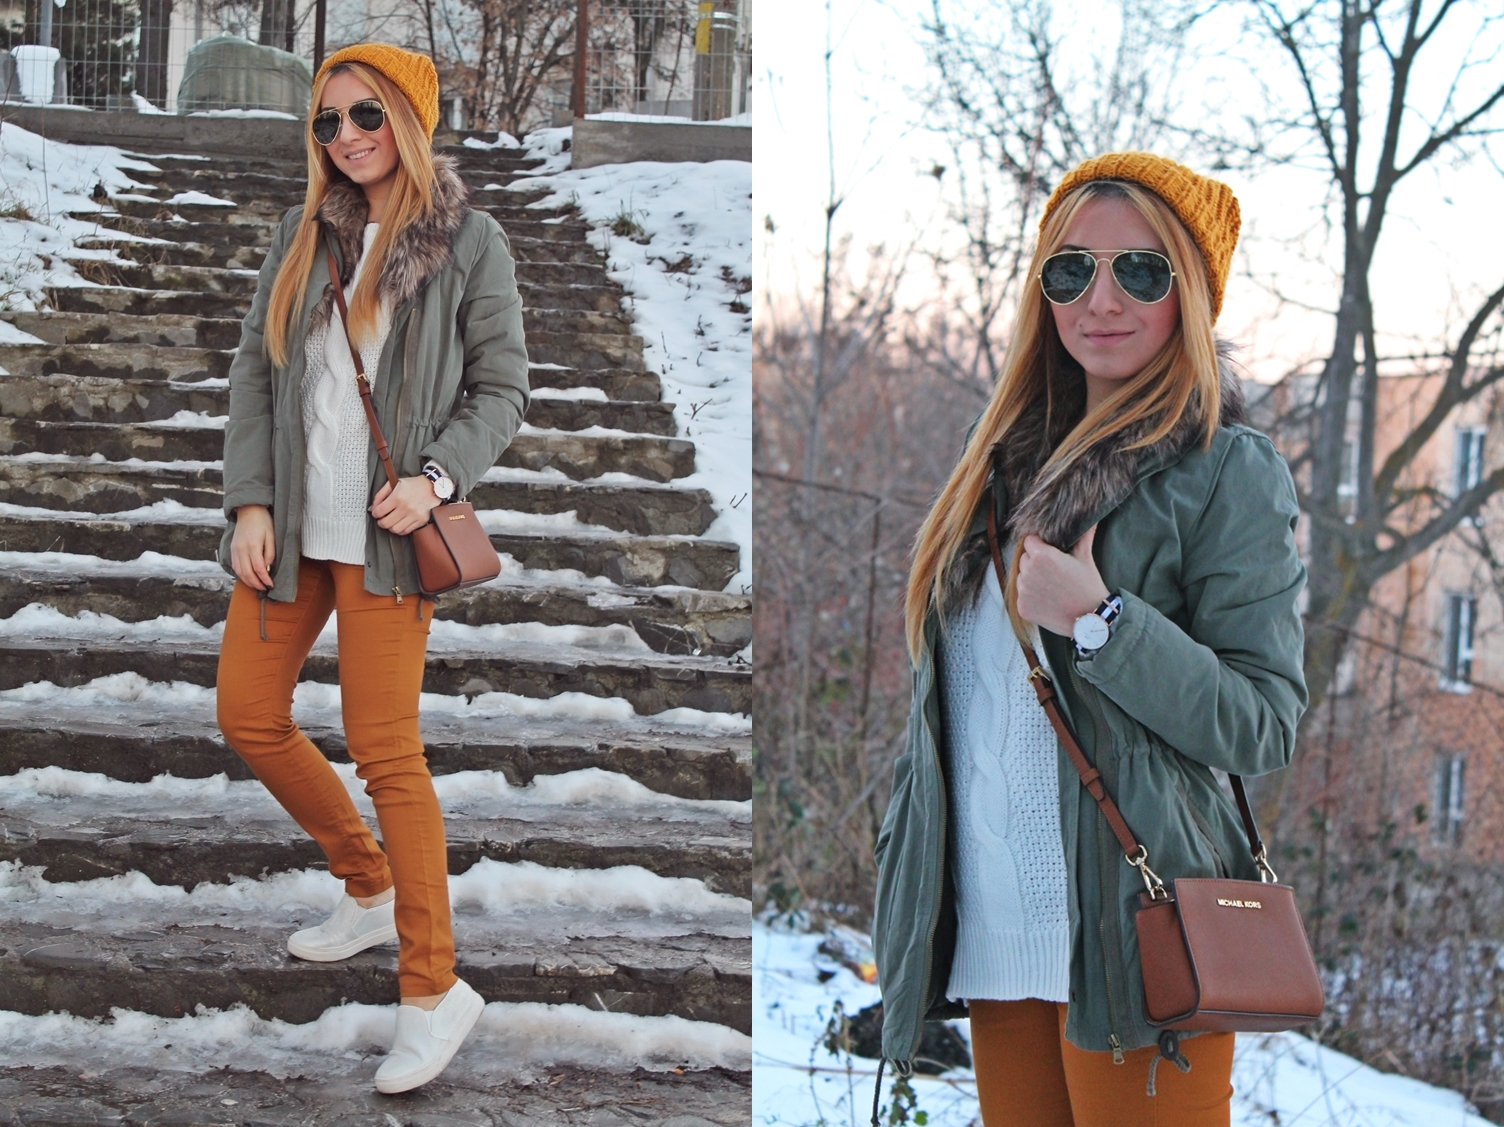 lookbook, andreea design, street style, parka, yellow, mustard, pants, white, sweater, sunnies, michael kors, bag, crossbody, winter, outfit